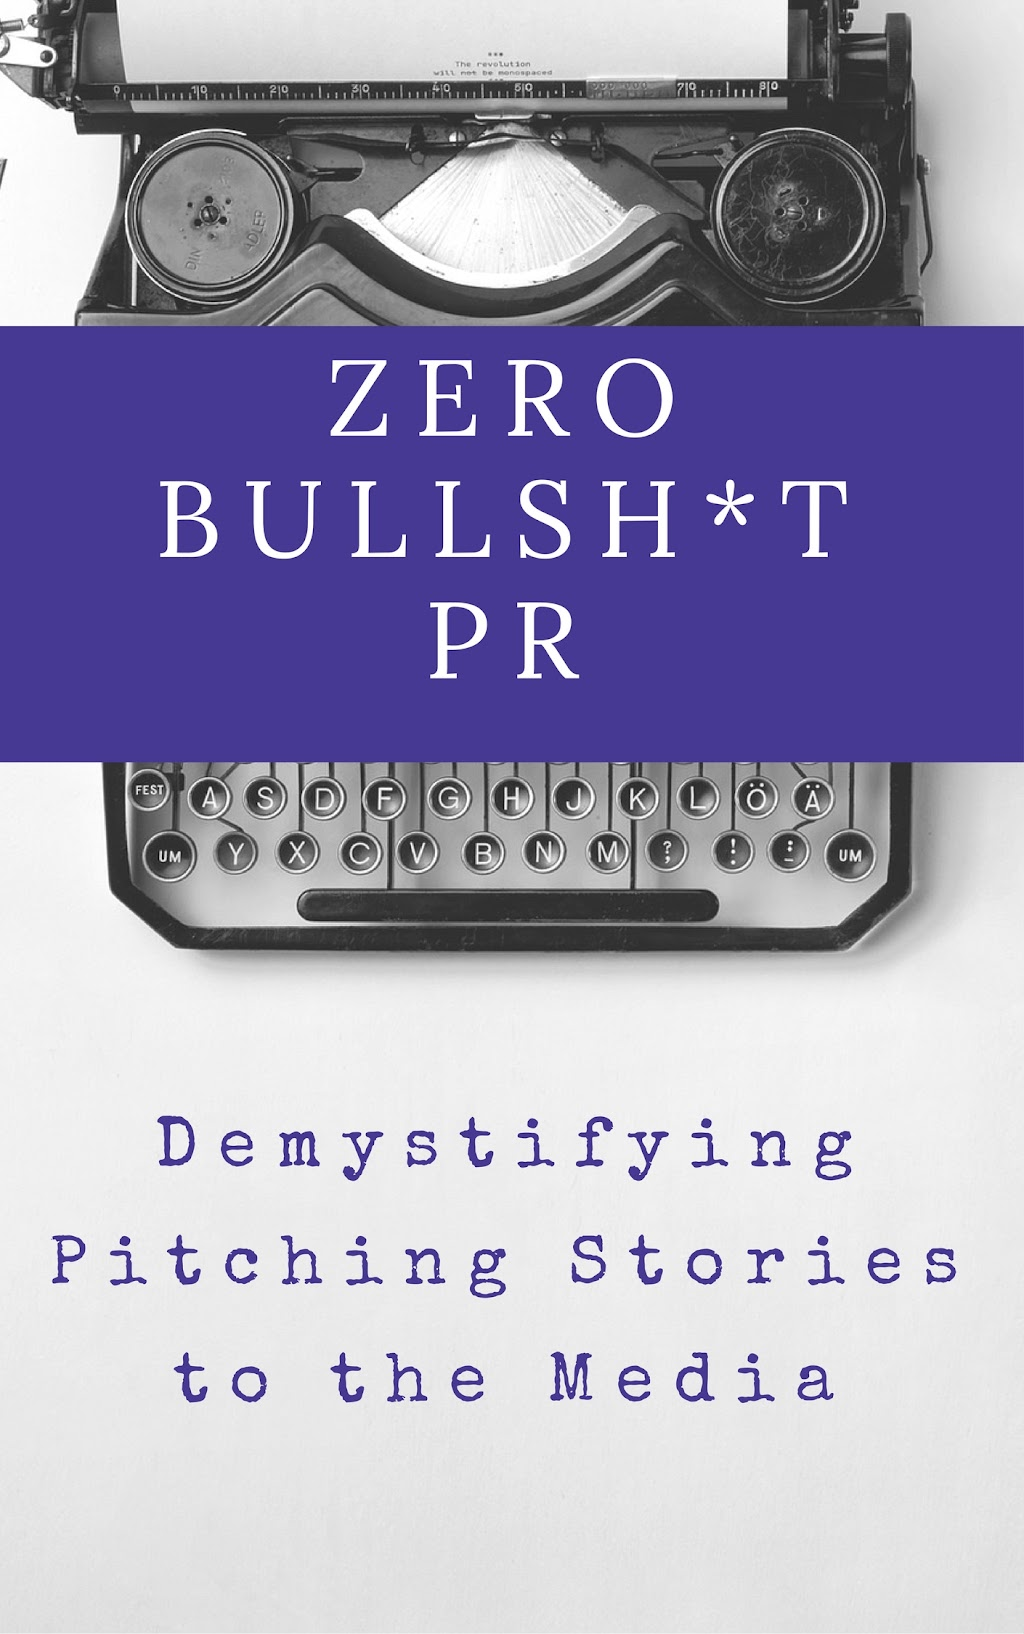 Pitching Stories to the Media